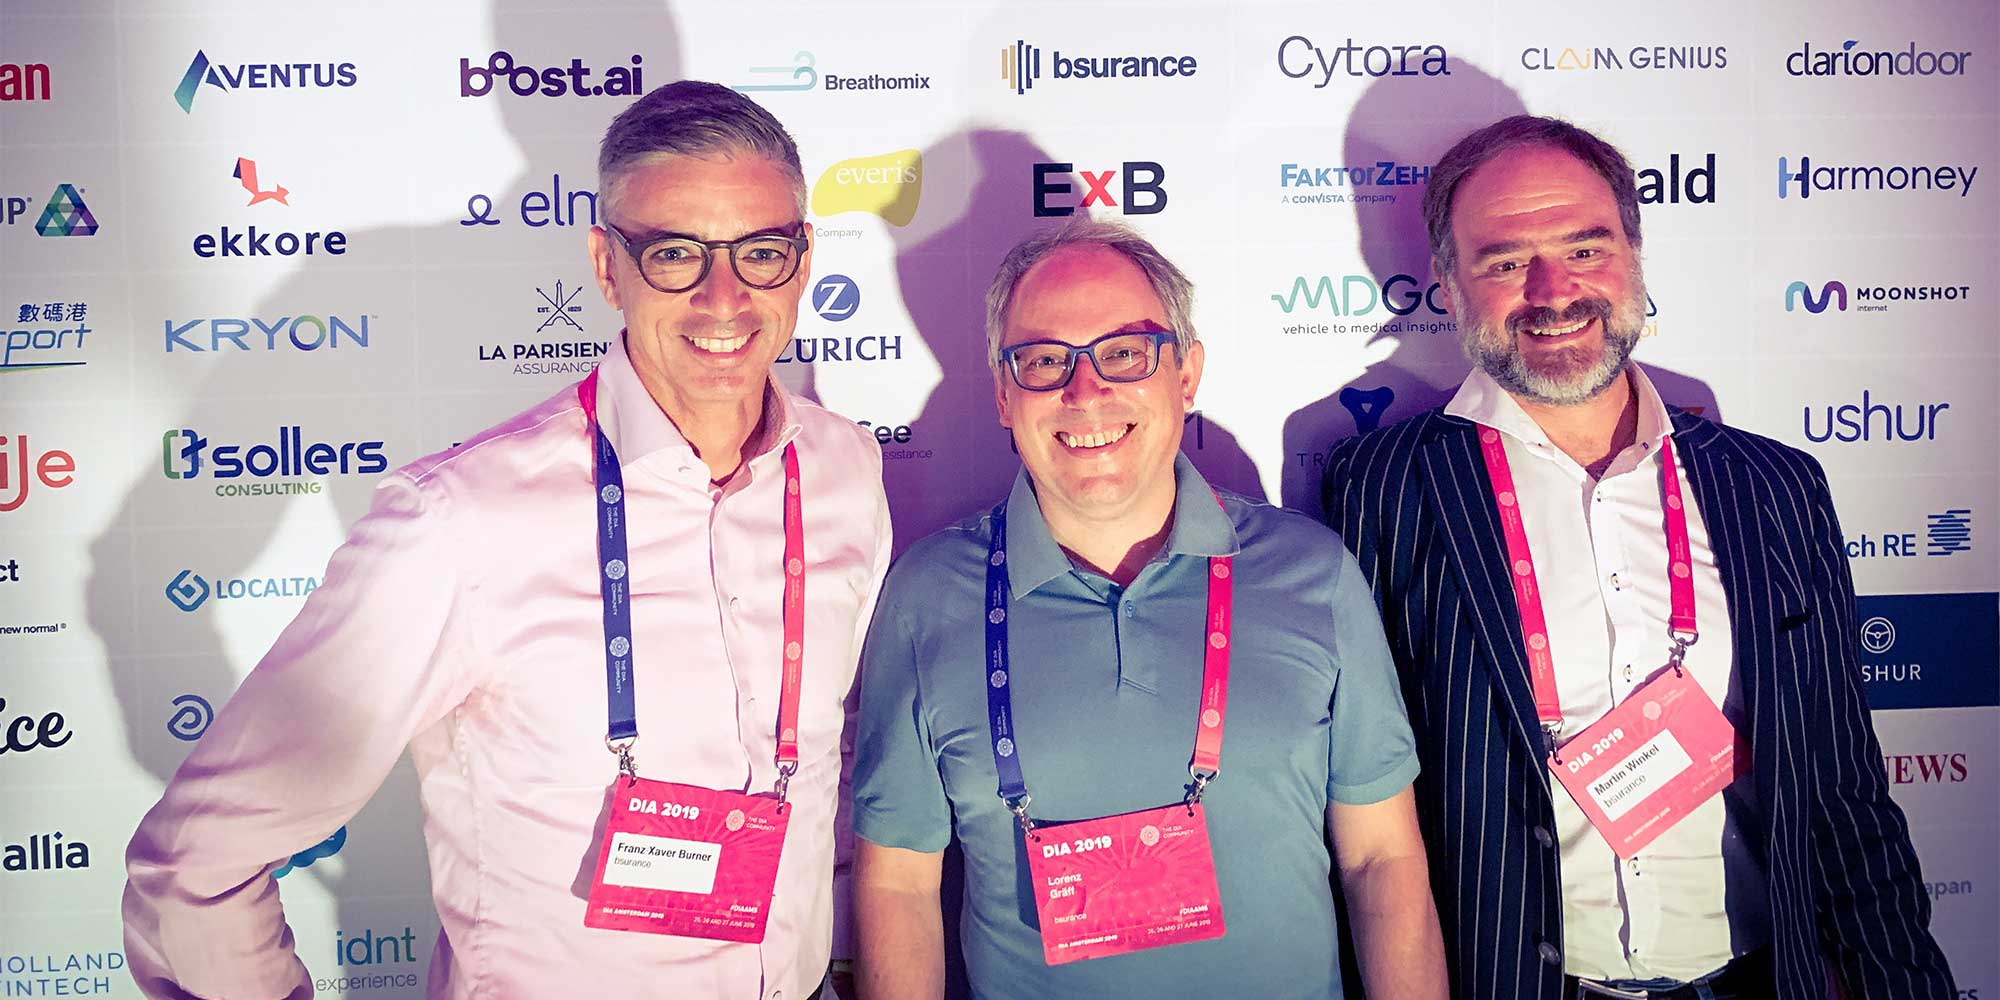 Team bsurance at the Digital Insurance Agenda Amsterdam 2019